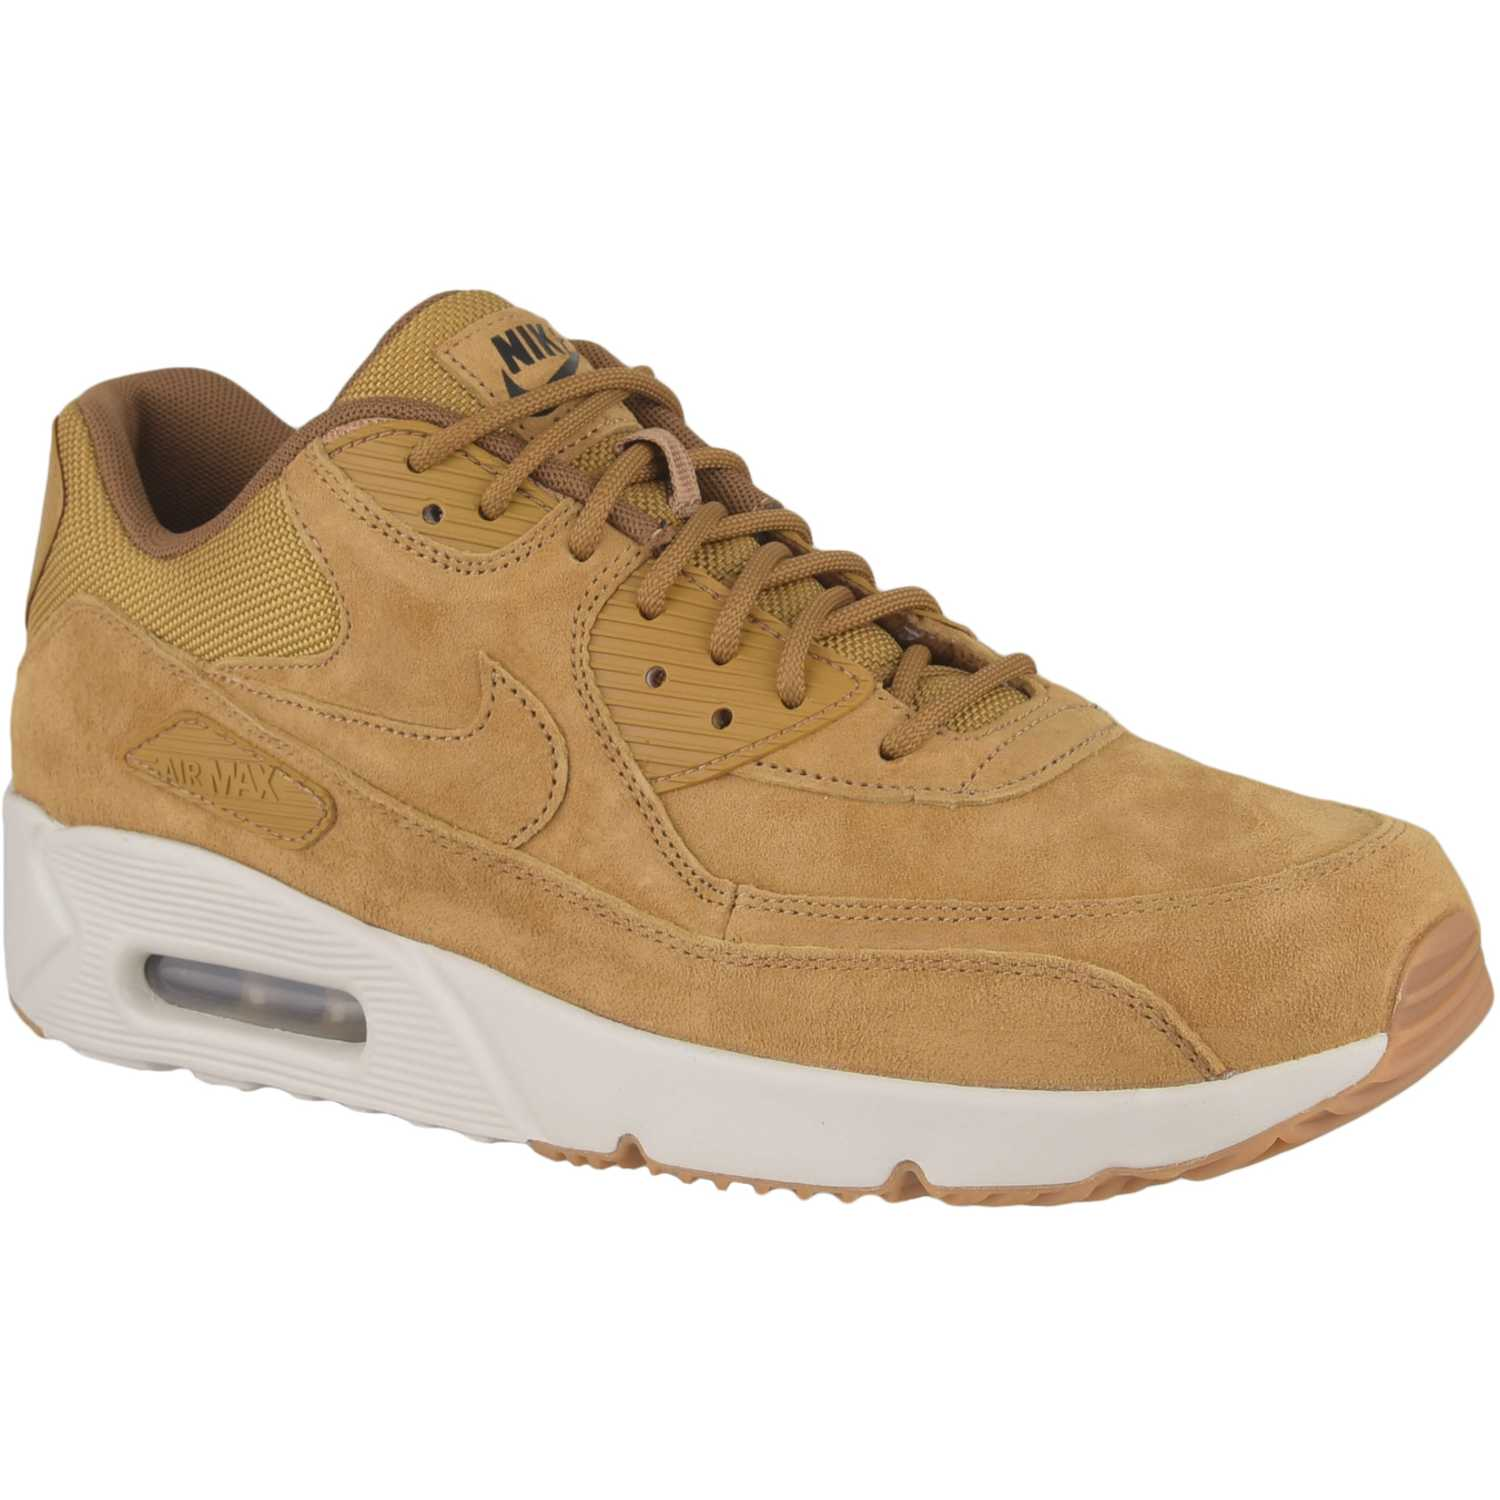 sélection premium 12826 b46c6 Casual de Hombre Nike Camel air max 90 ultra 2.0 ltr ...